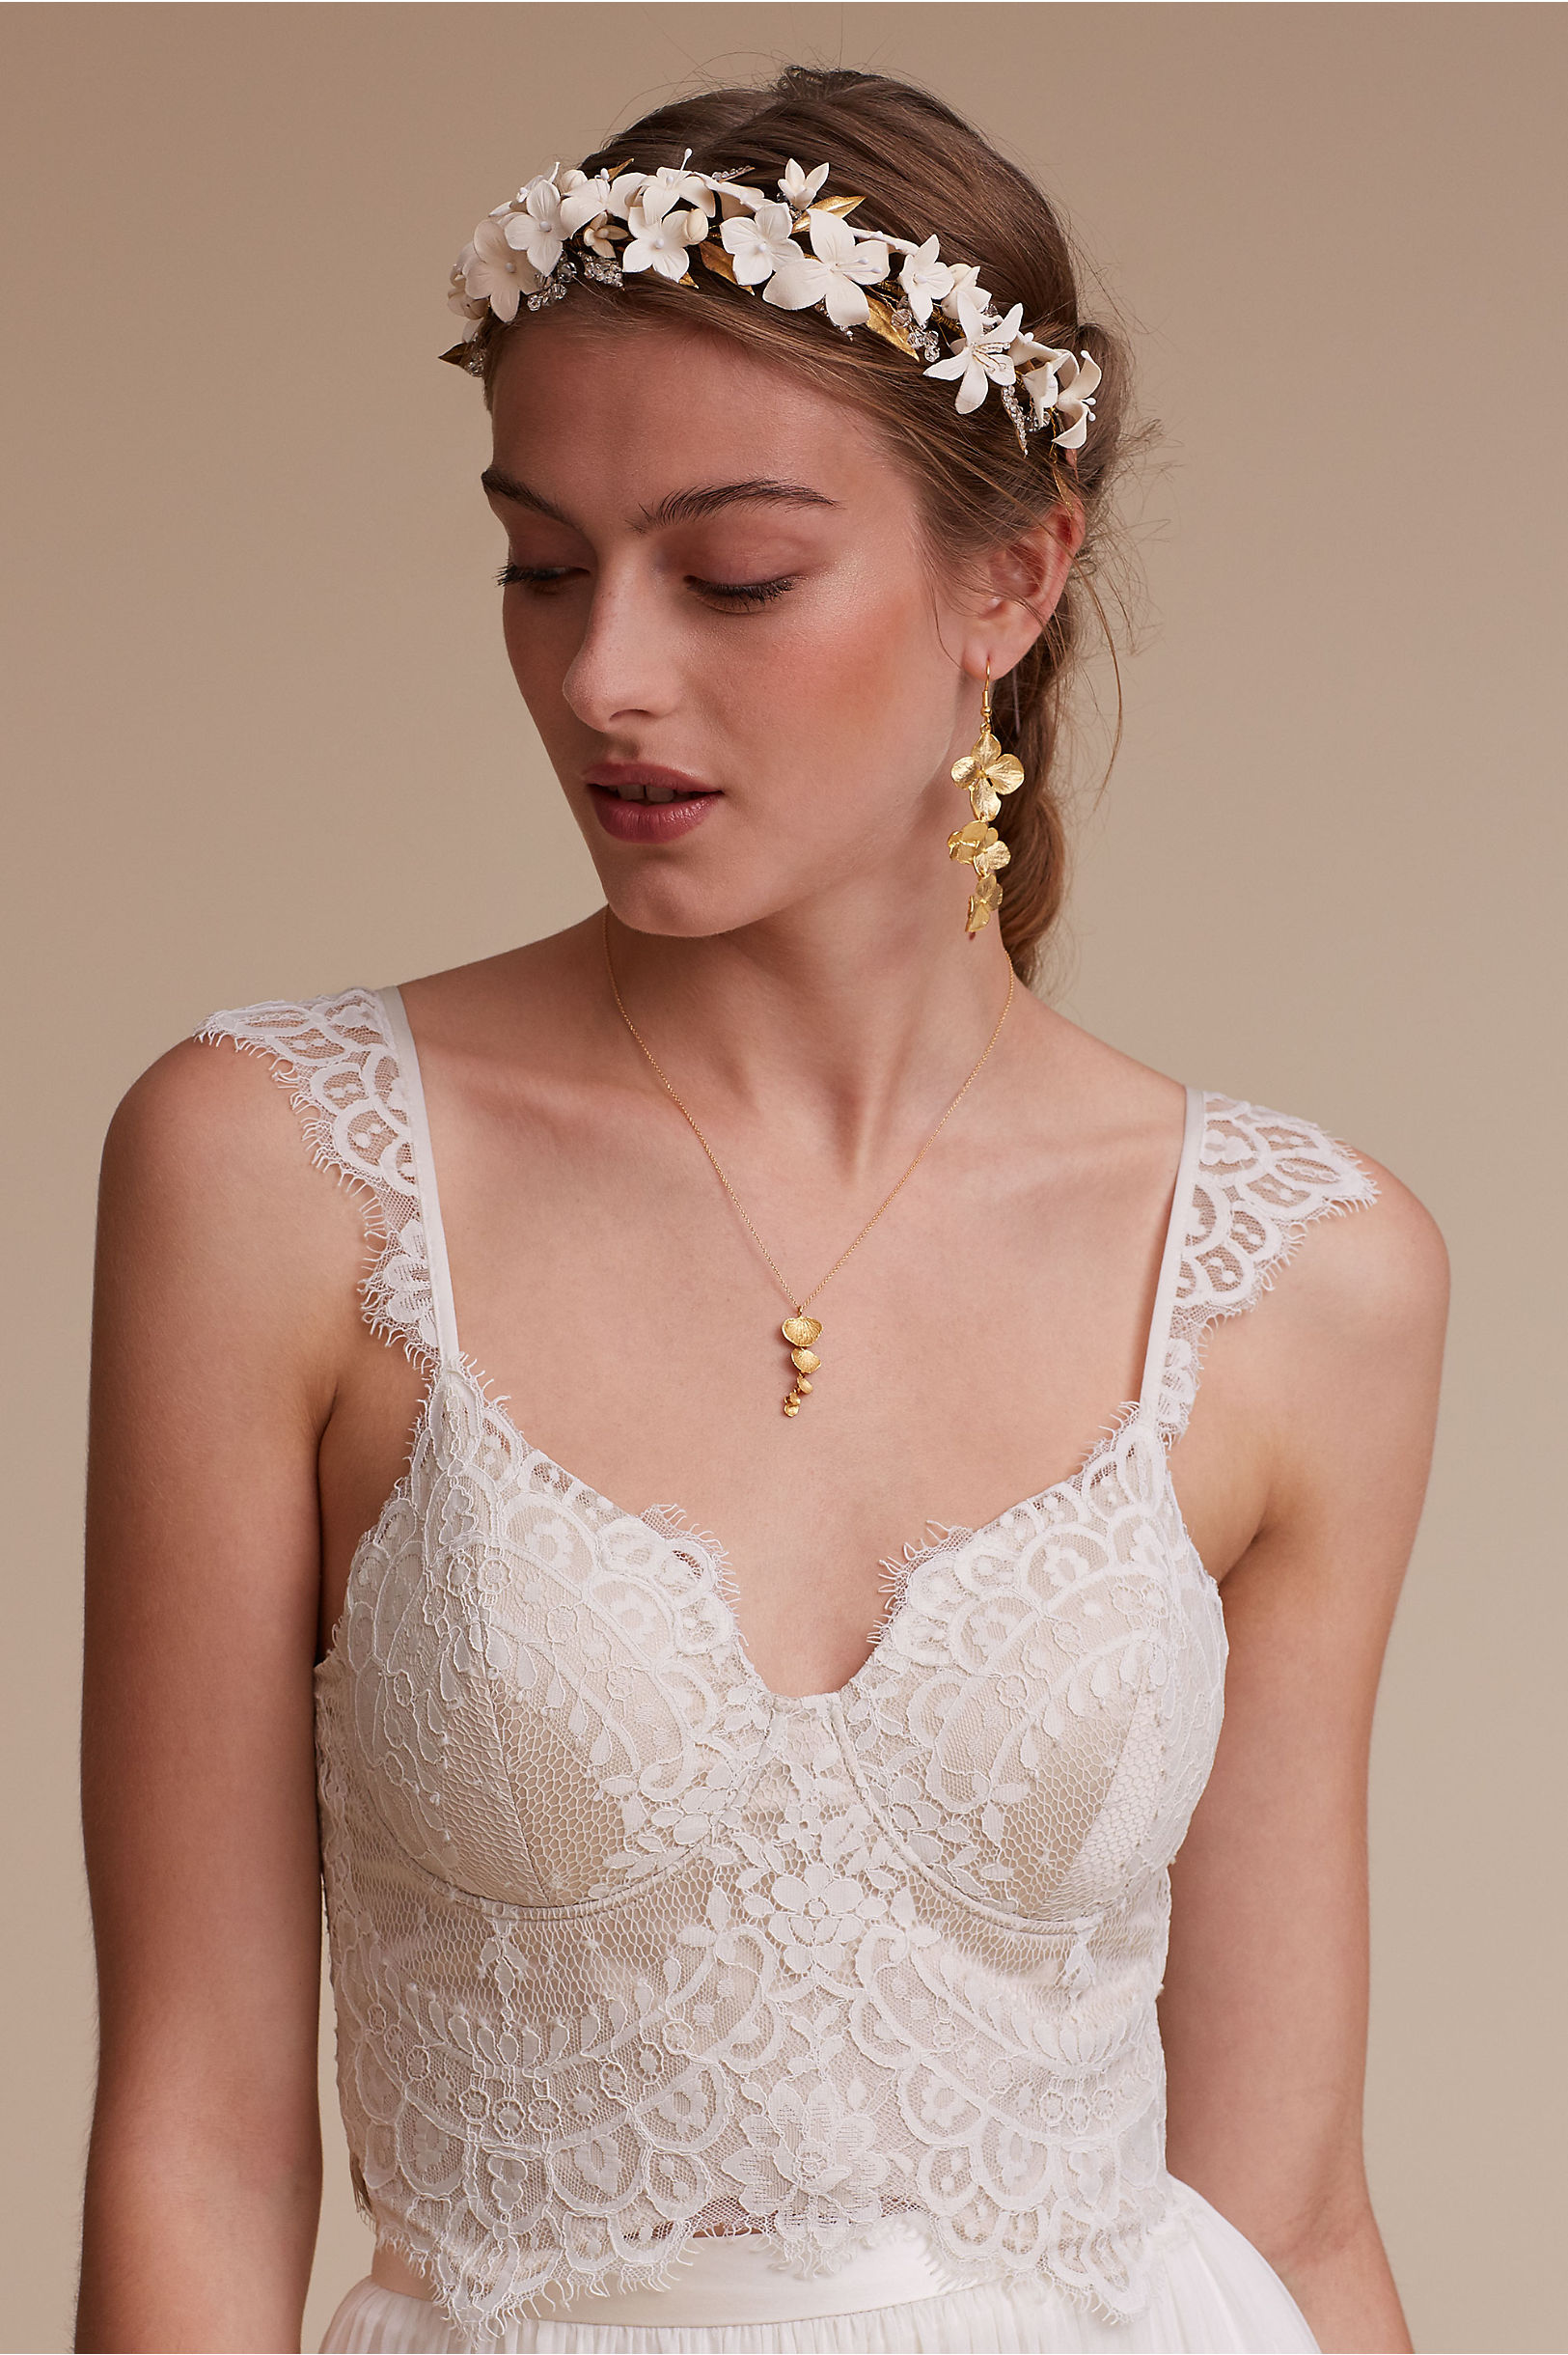 wed wedding the jasmine earrings modern to gold and smarter lee photography necklace jewelry dress ideas pin jewellery way delicate rose